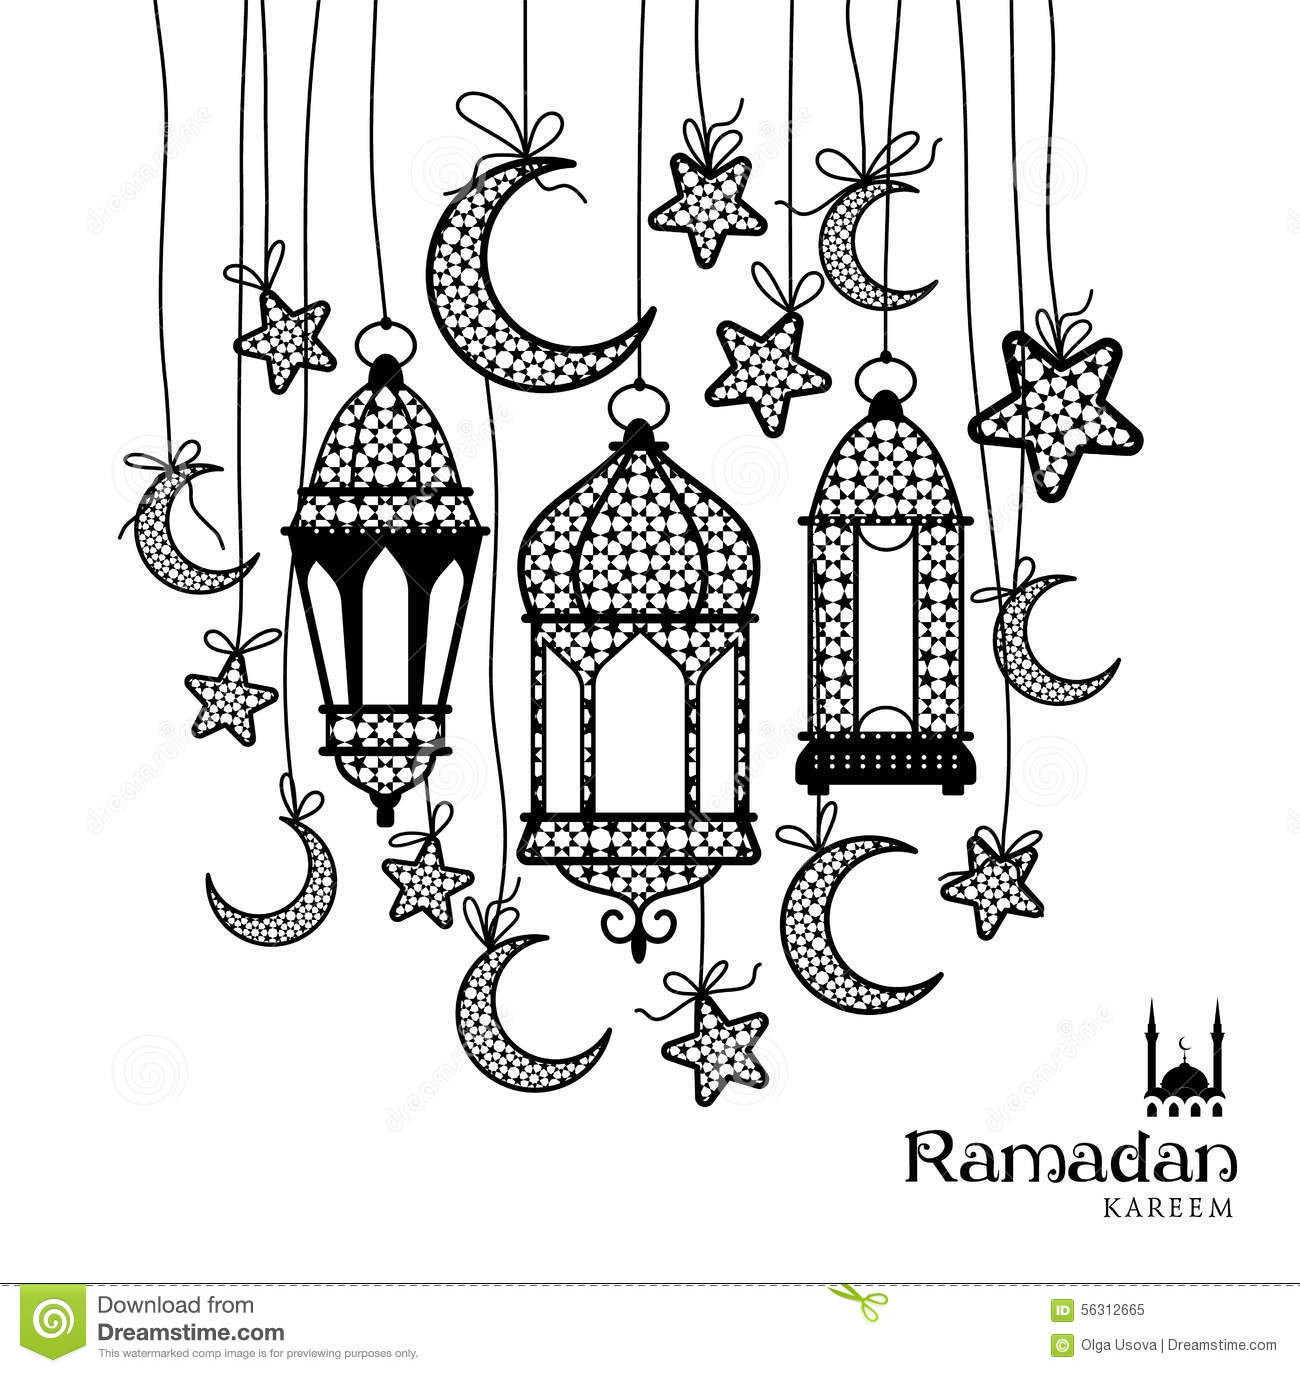 Ramadan Kareem Celebration Greeting Card Stock Photo